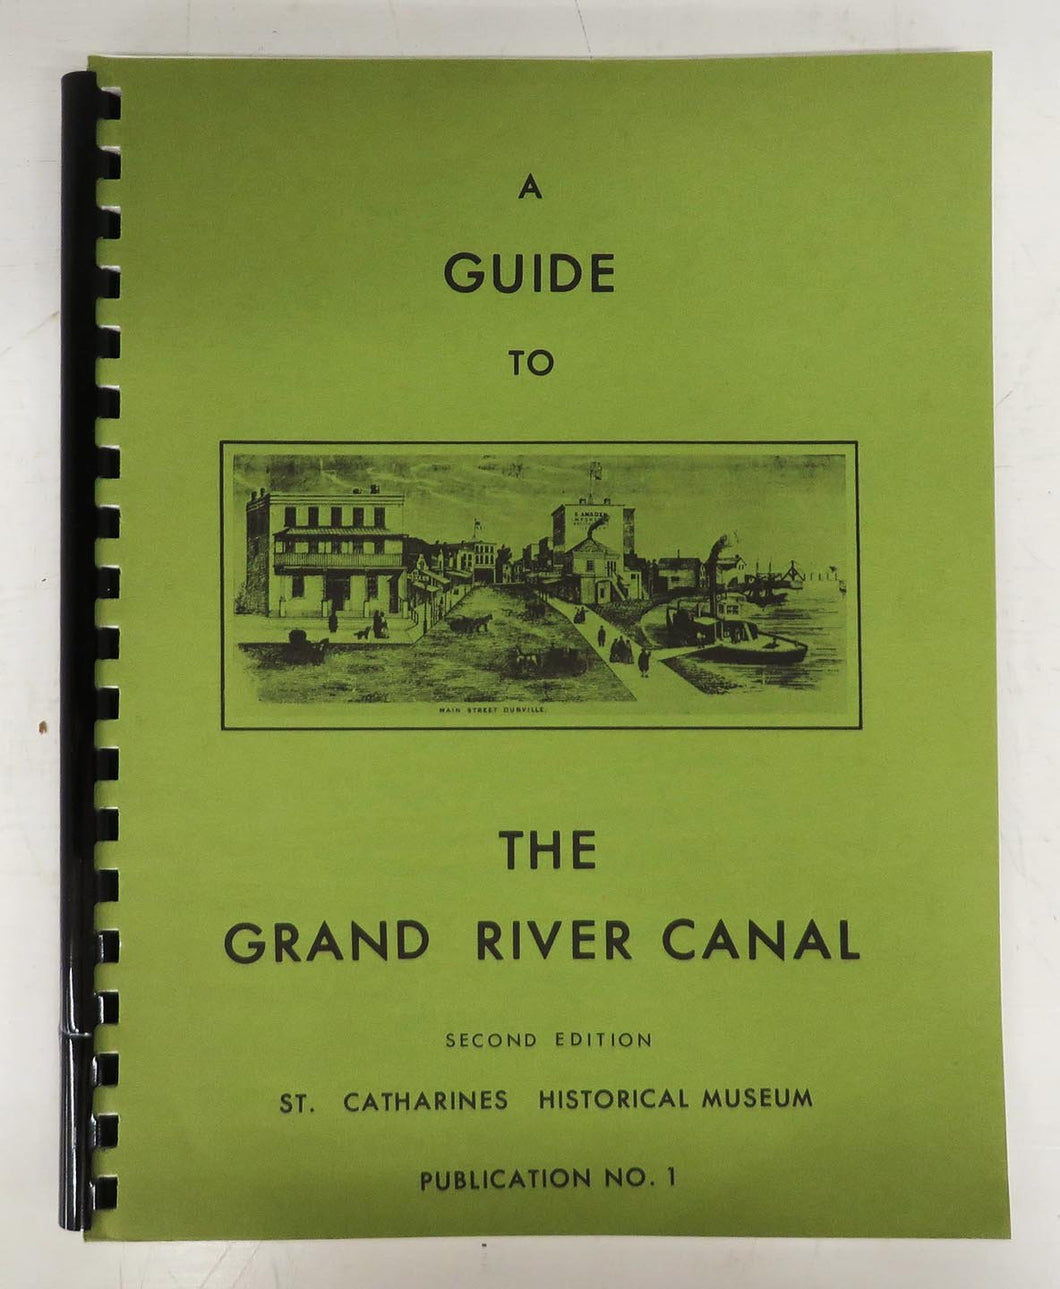 A Guide to The Grand River Canal